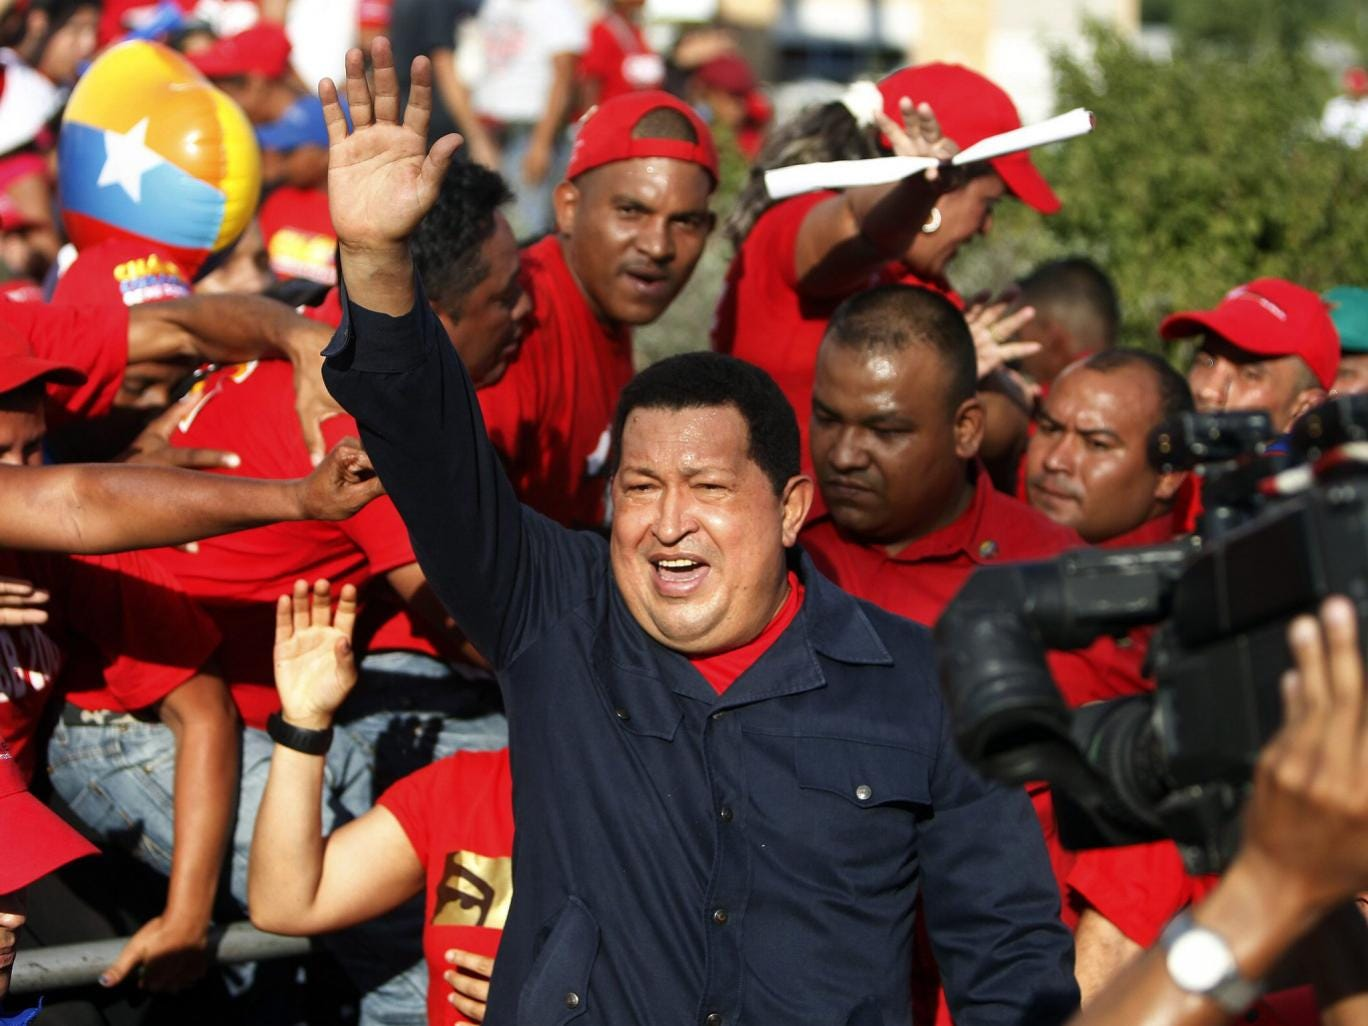 Chavez at an electoral event in Charallave, Venezuela, last September